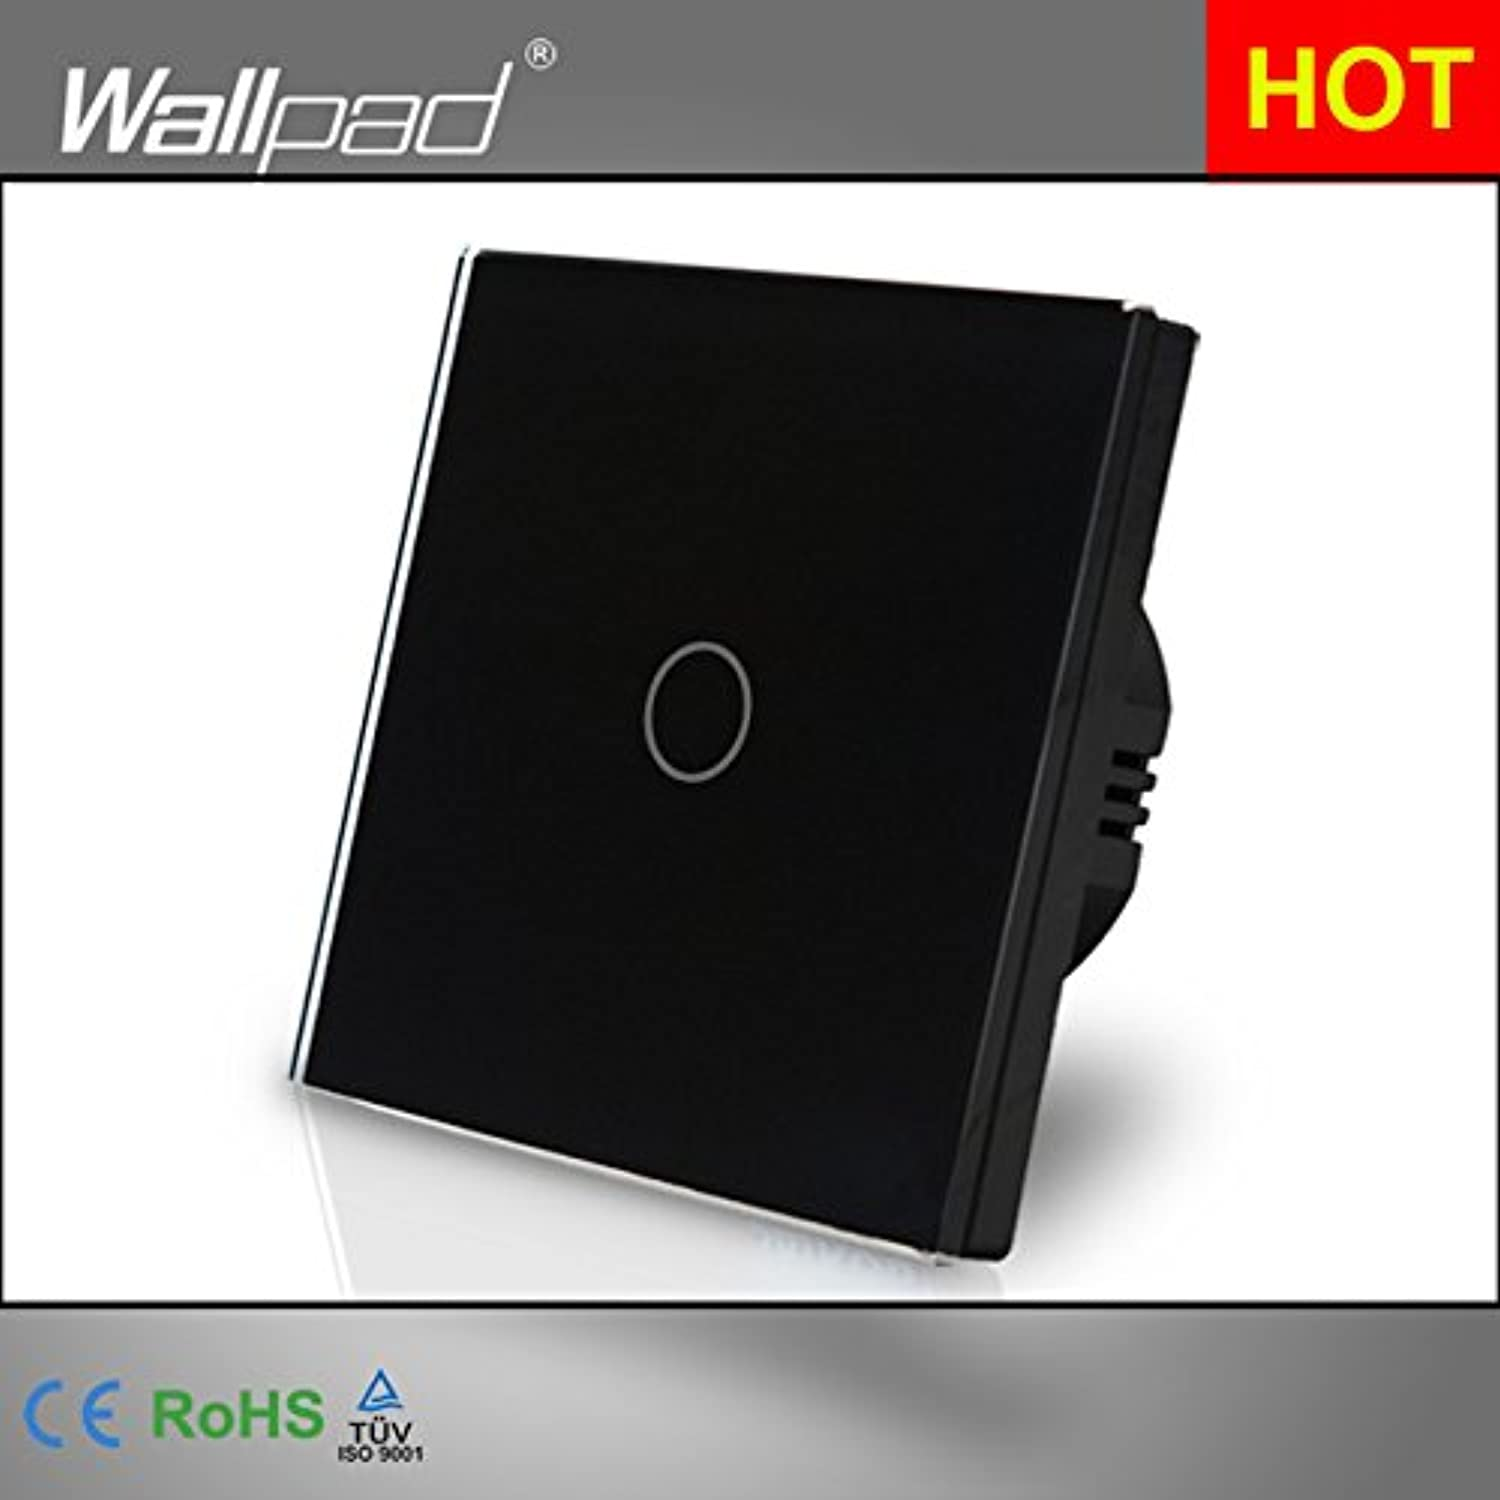 Wallpad 86  86mm 1 Gang 1 Way gold Light Switch EU Standard Wall Switch AC110250V Electrical Touch Switch with LED Indicator  (color  Black)